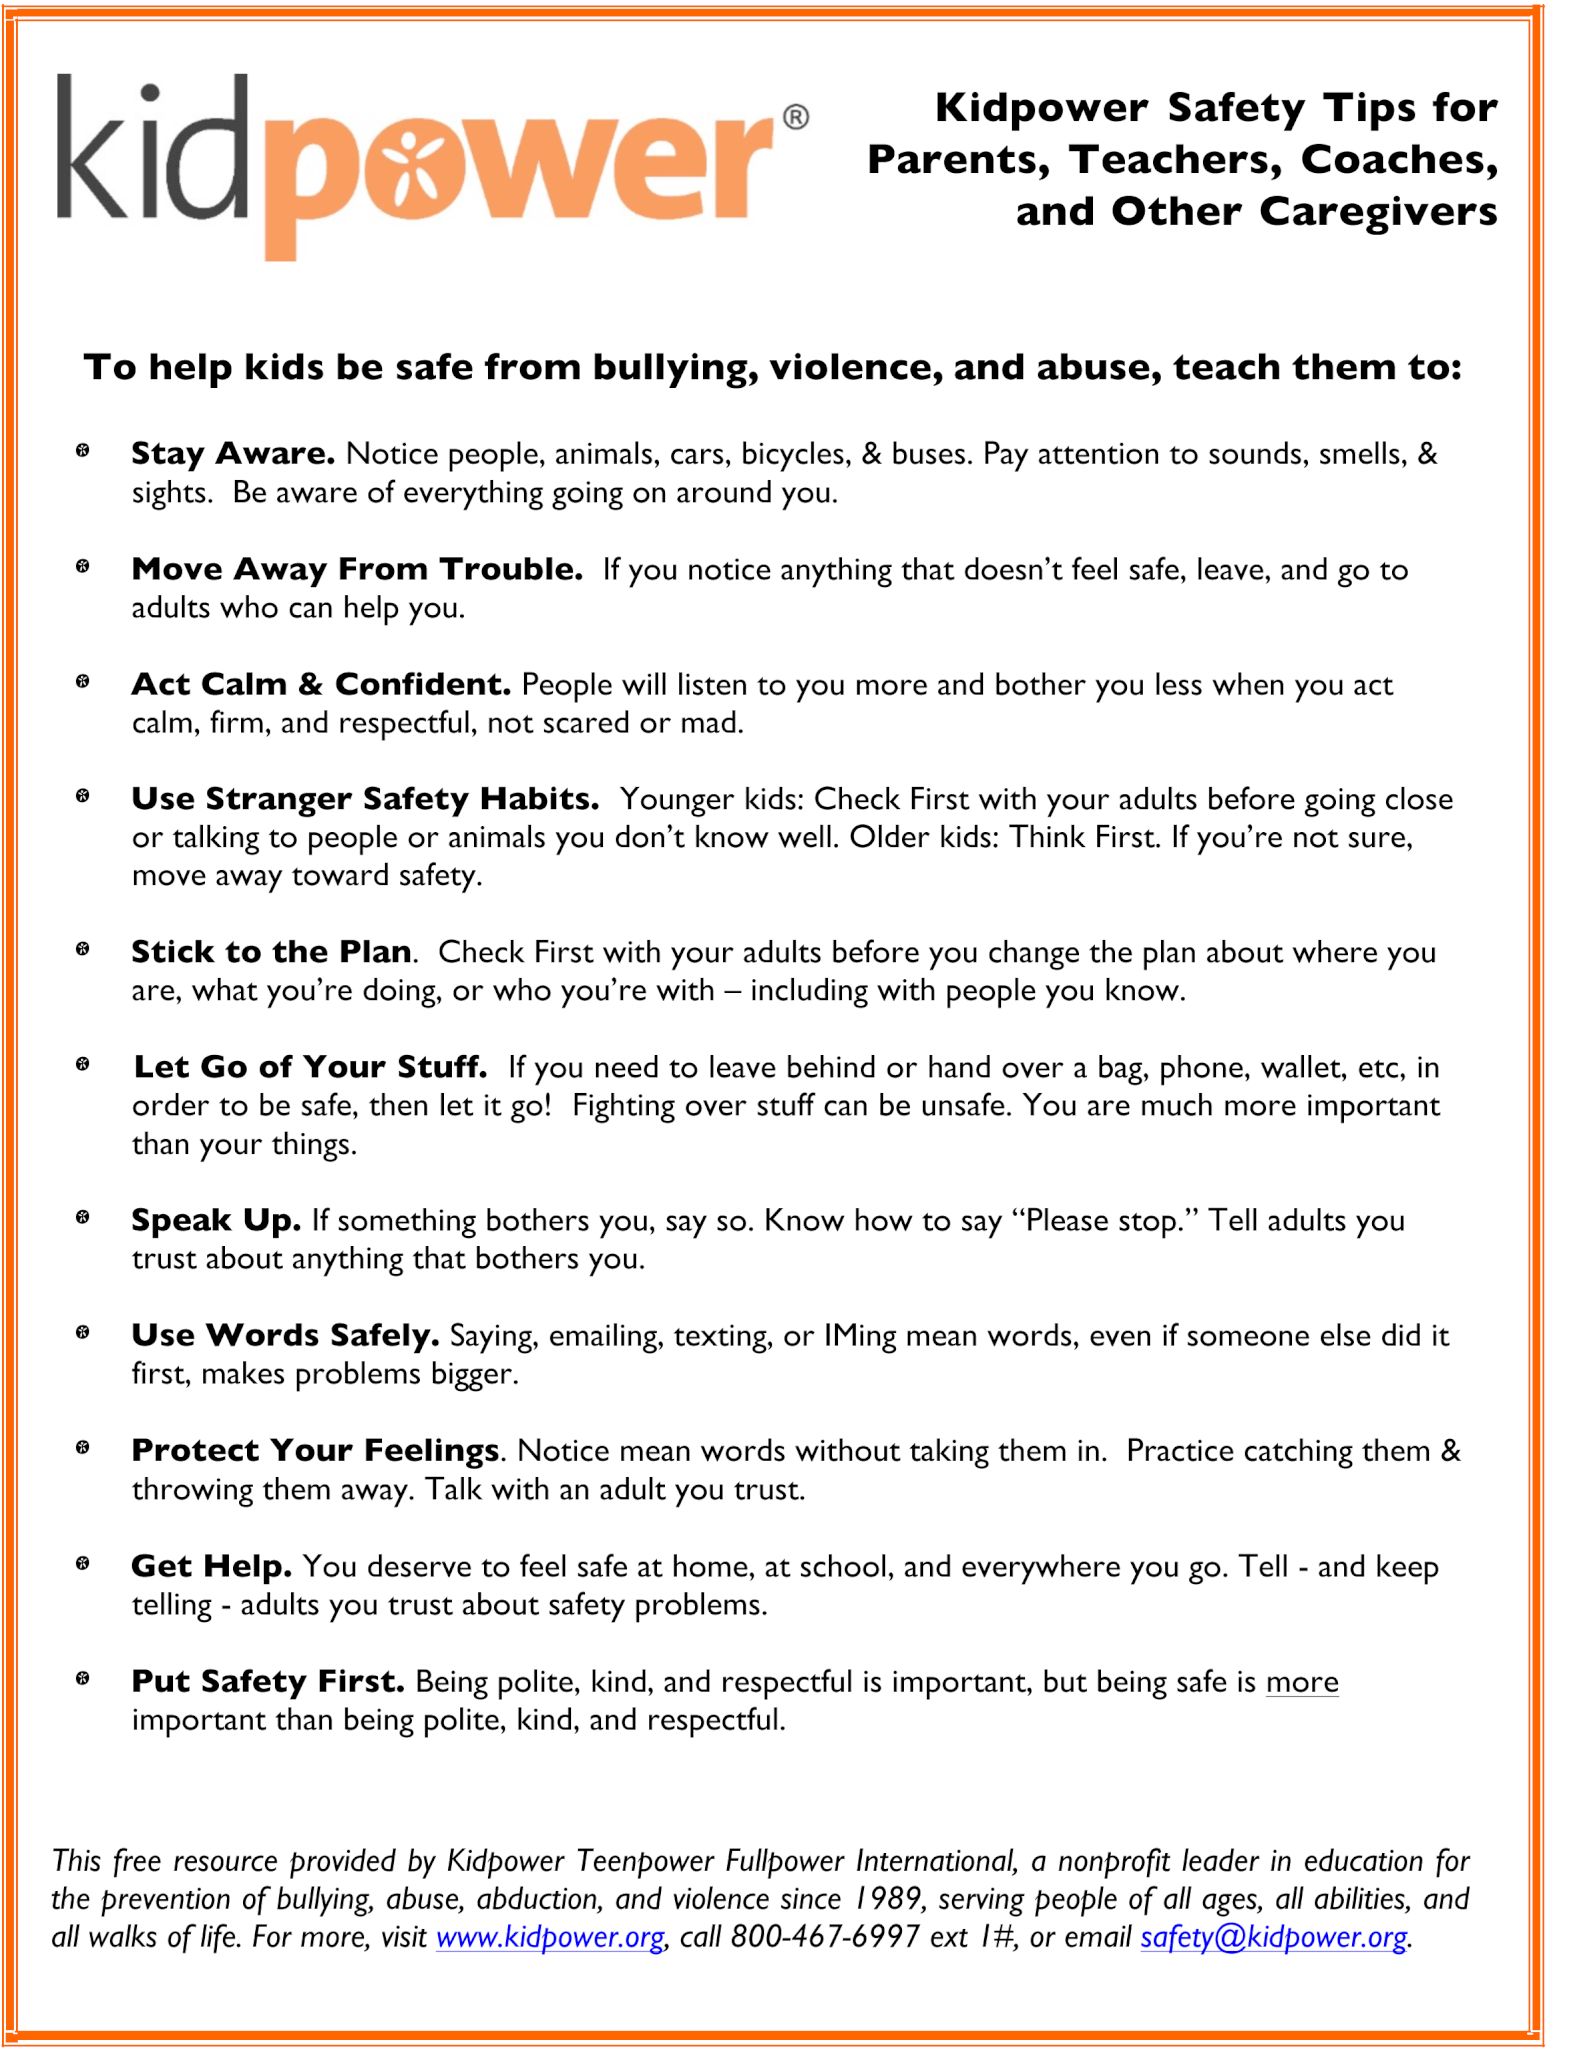 Free Worksheet Getting To Know You Worksheet For Adults kidpower safety tips and handouts international for parents teachers coaches other caregivers